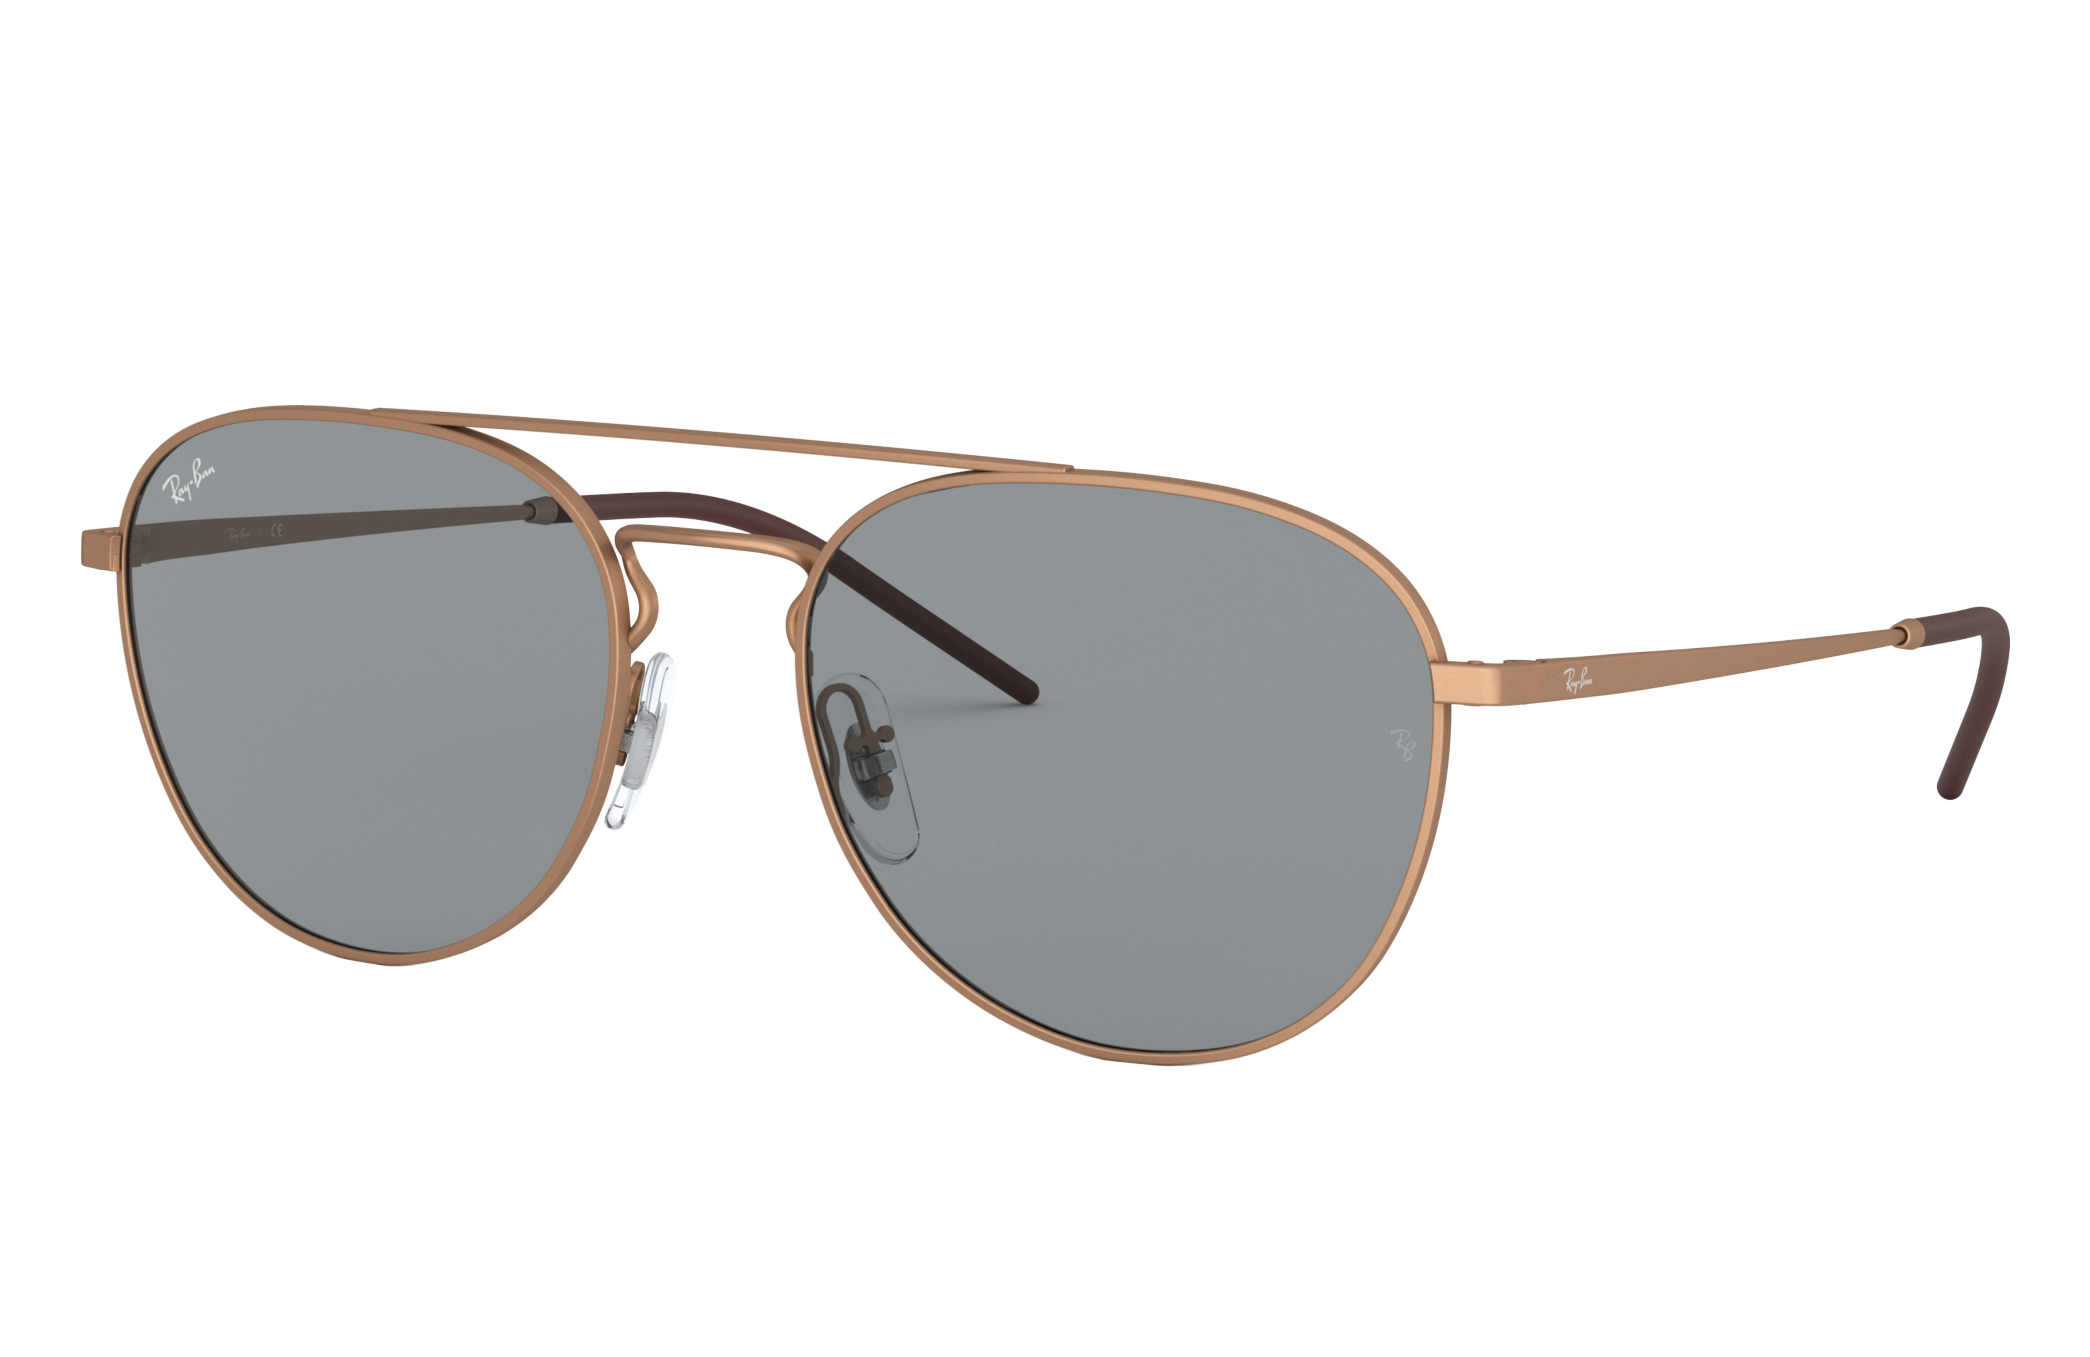 Ray-Ban Rb3589 Bronze-Copper, Grey Lenses - RB3589